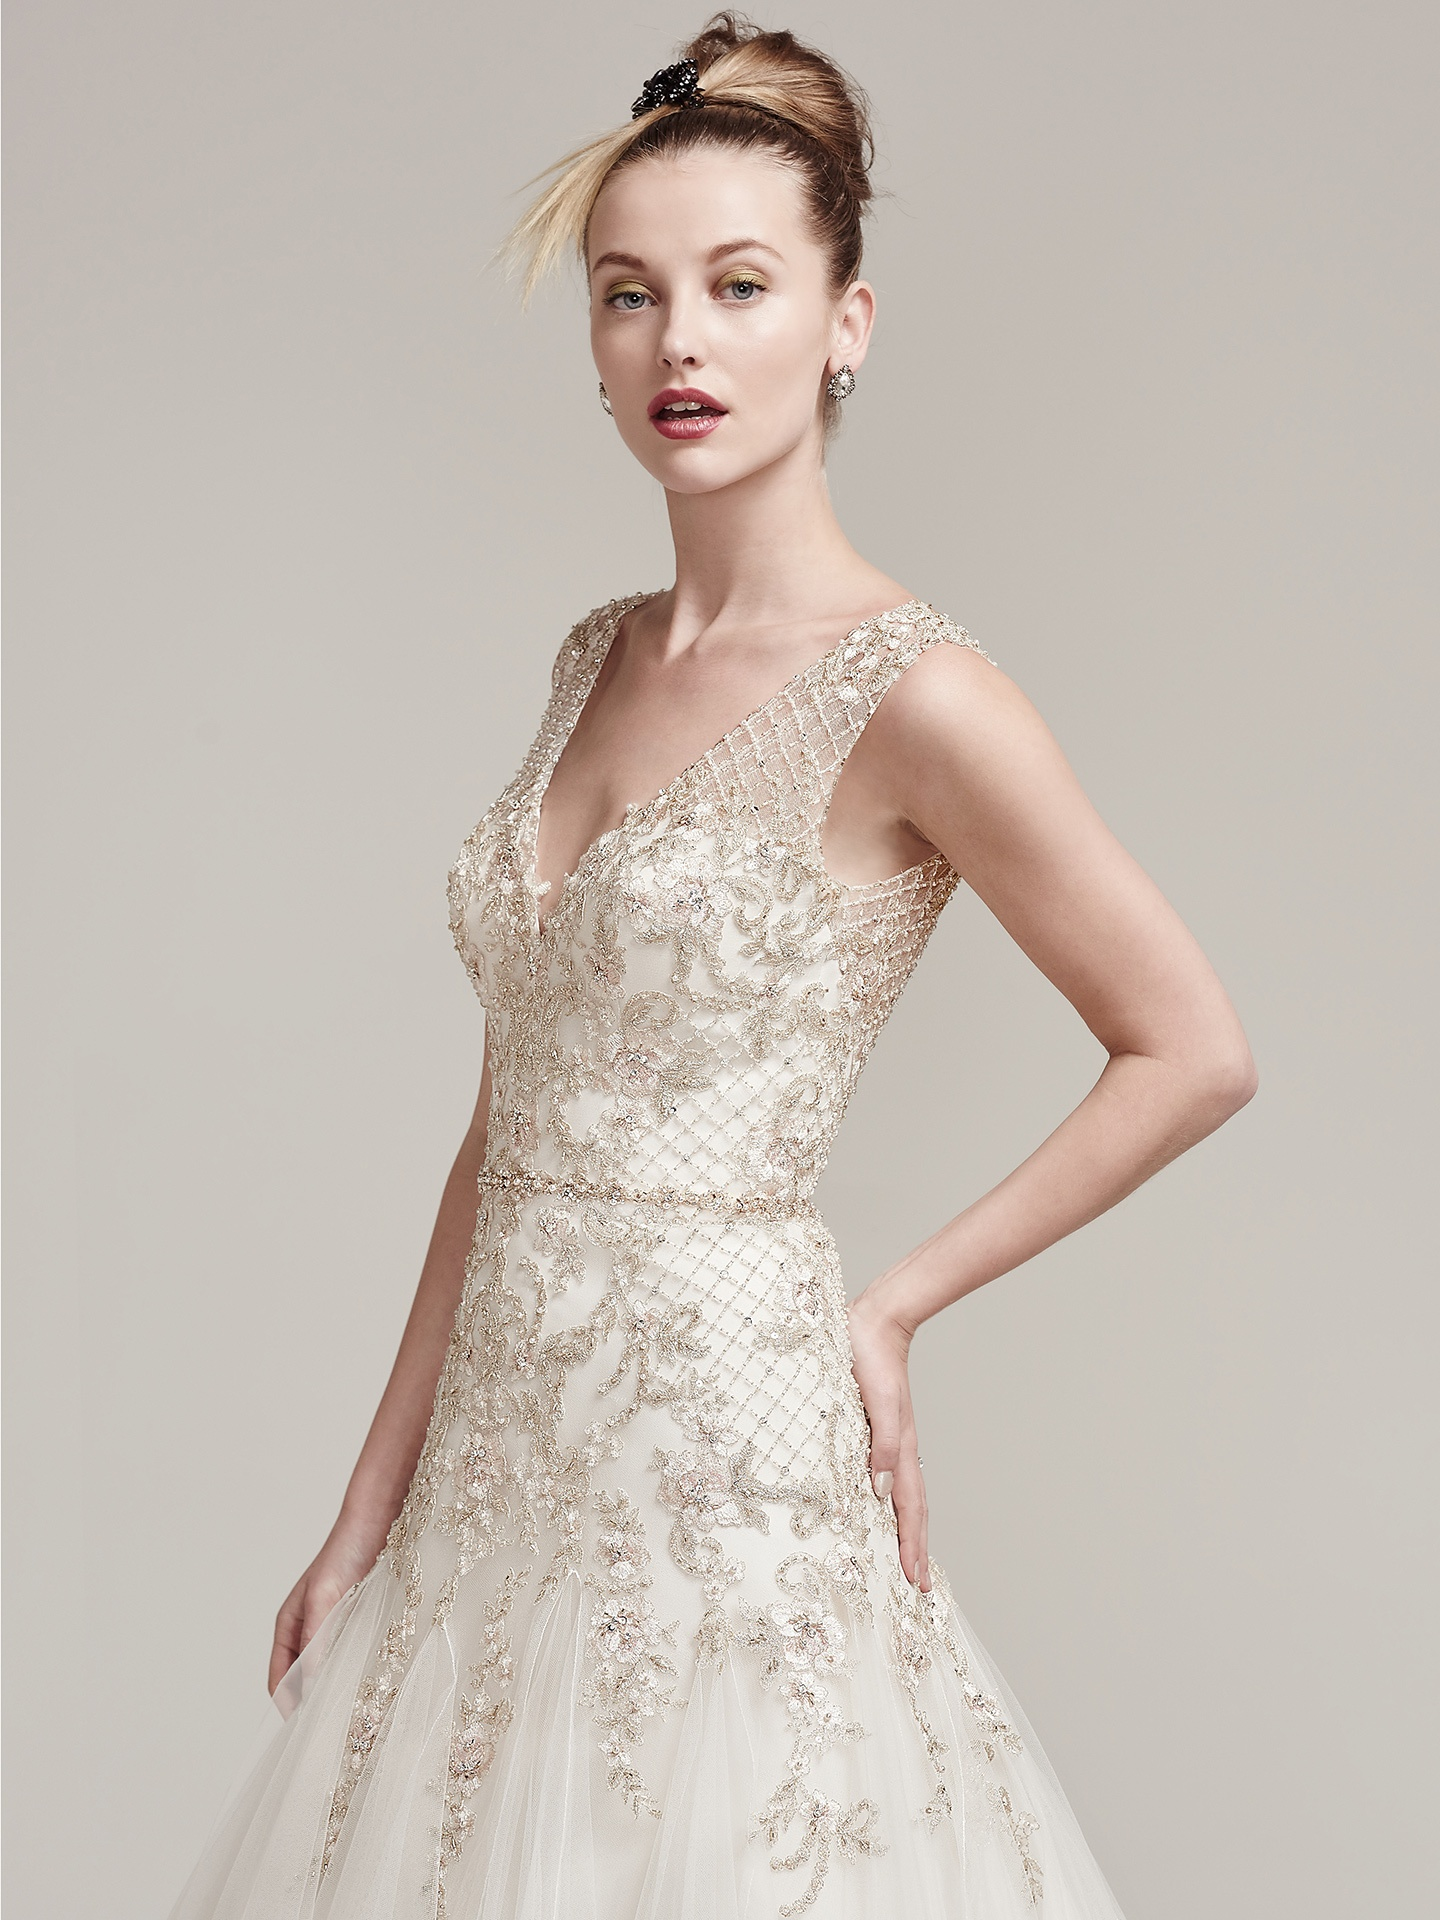 Wedding Dress Colors in Shades of White - Champagne wedding dresses by Maggie Sottero - Shauntelle